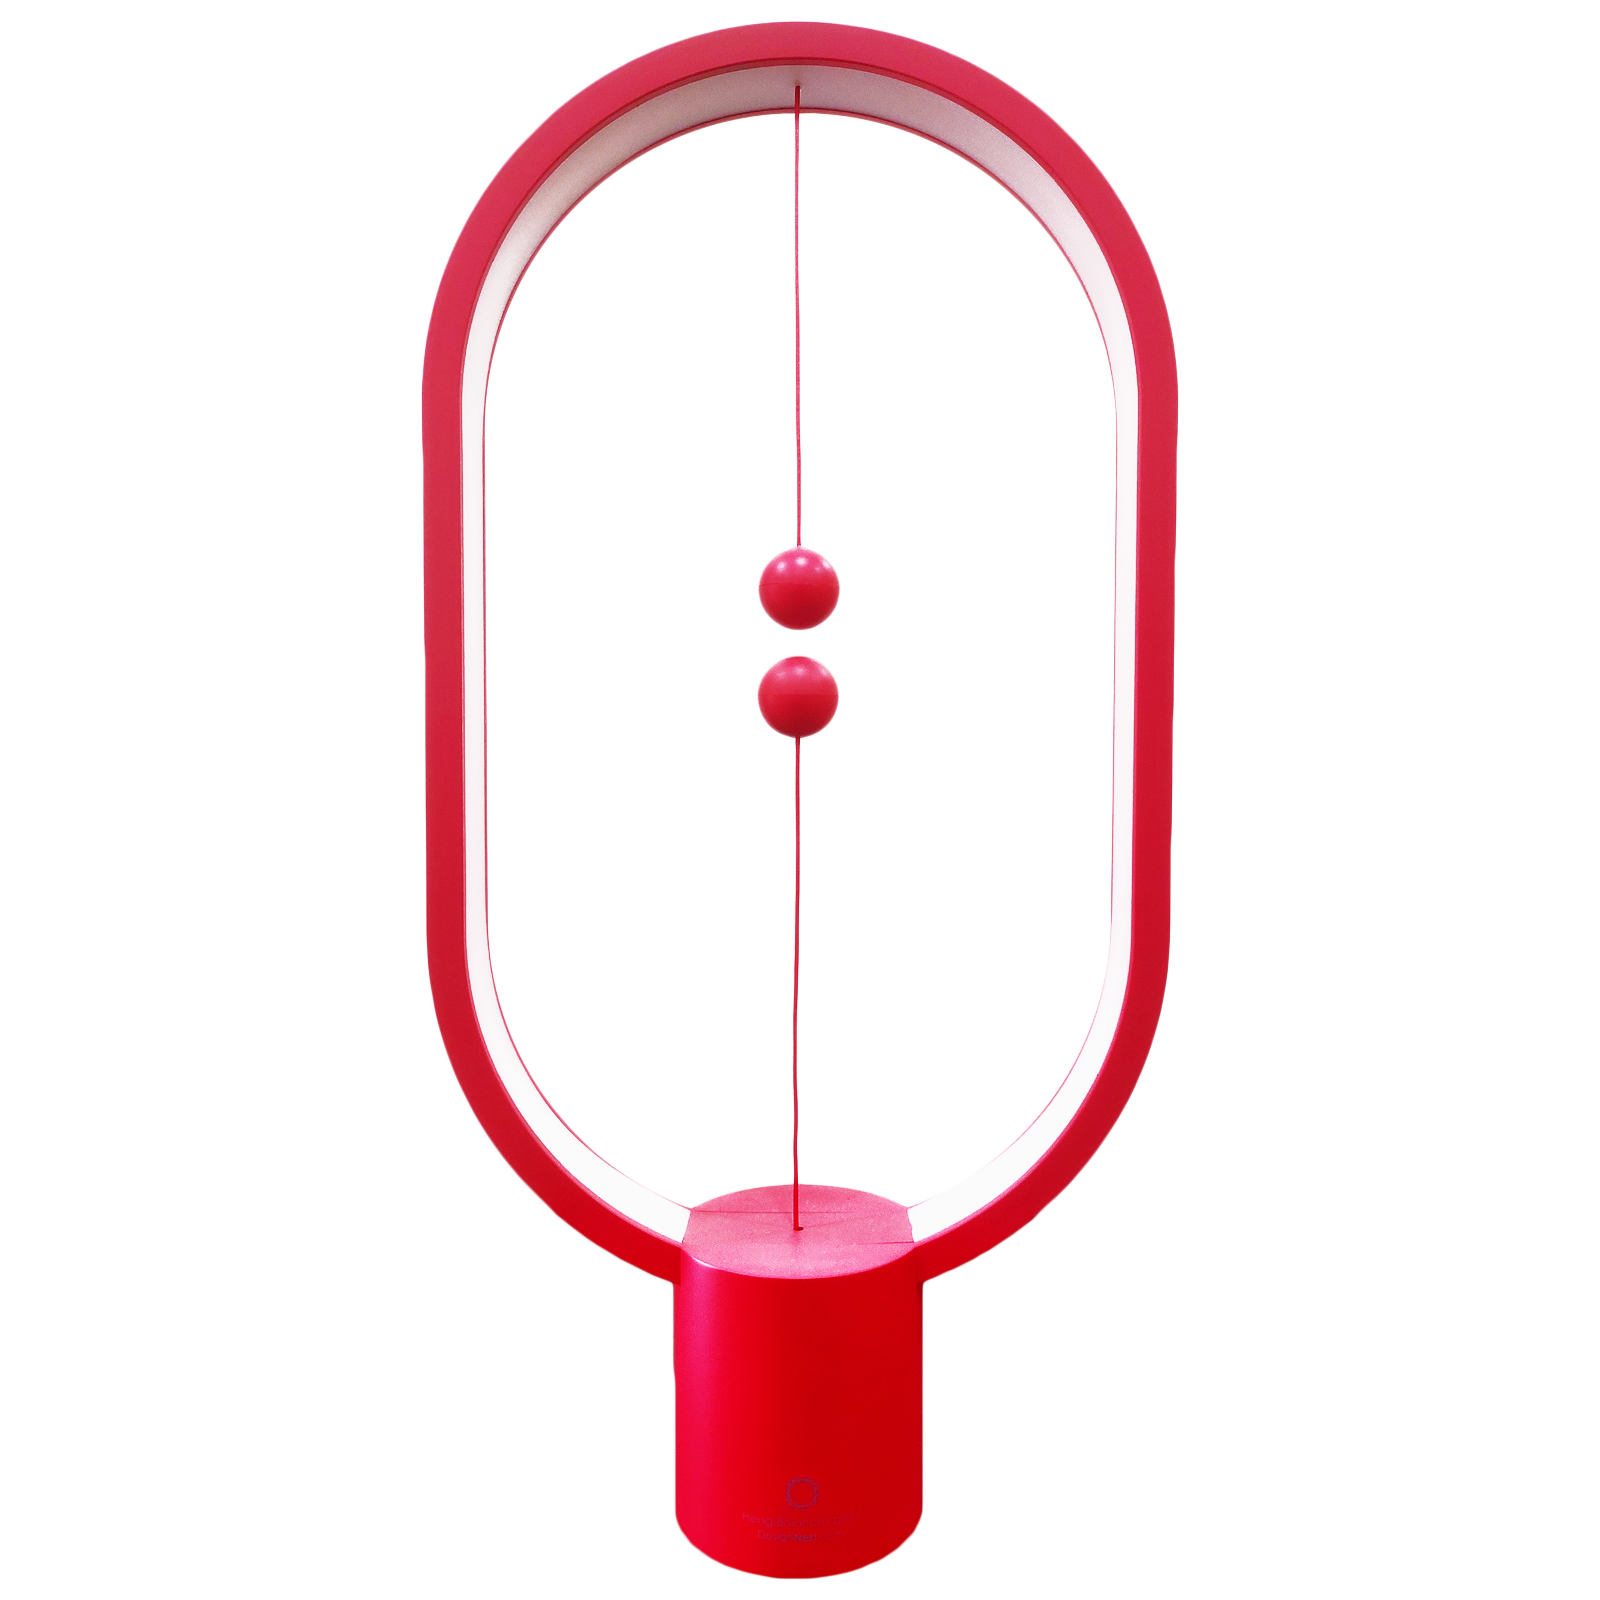 DesignNest Heng Balance 5 Watts LED Table Lamp (249 Lumens, 20000 Hours Life Span, DH0075RD/HBLEUC, Red)_1